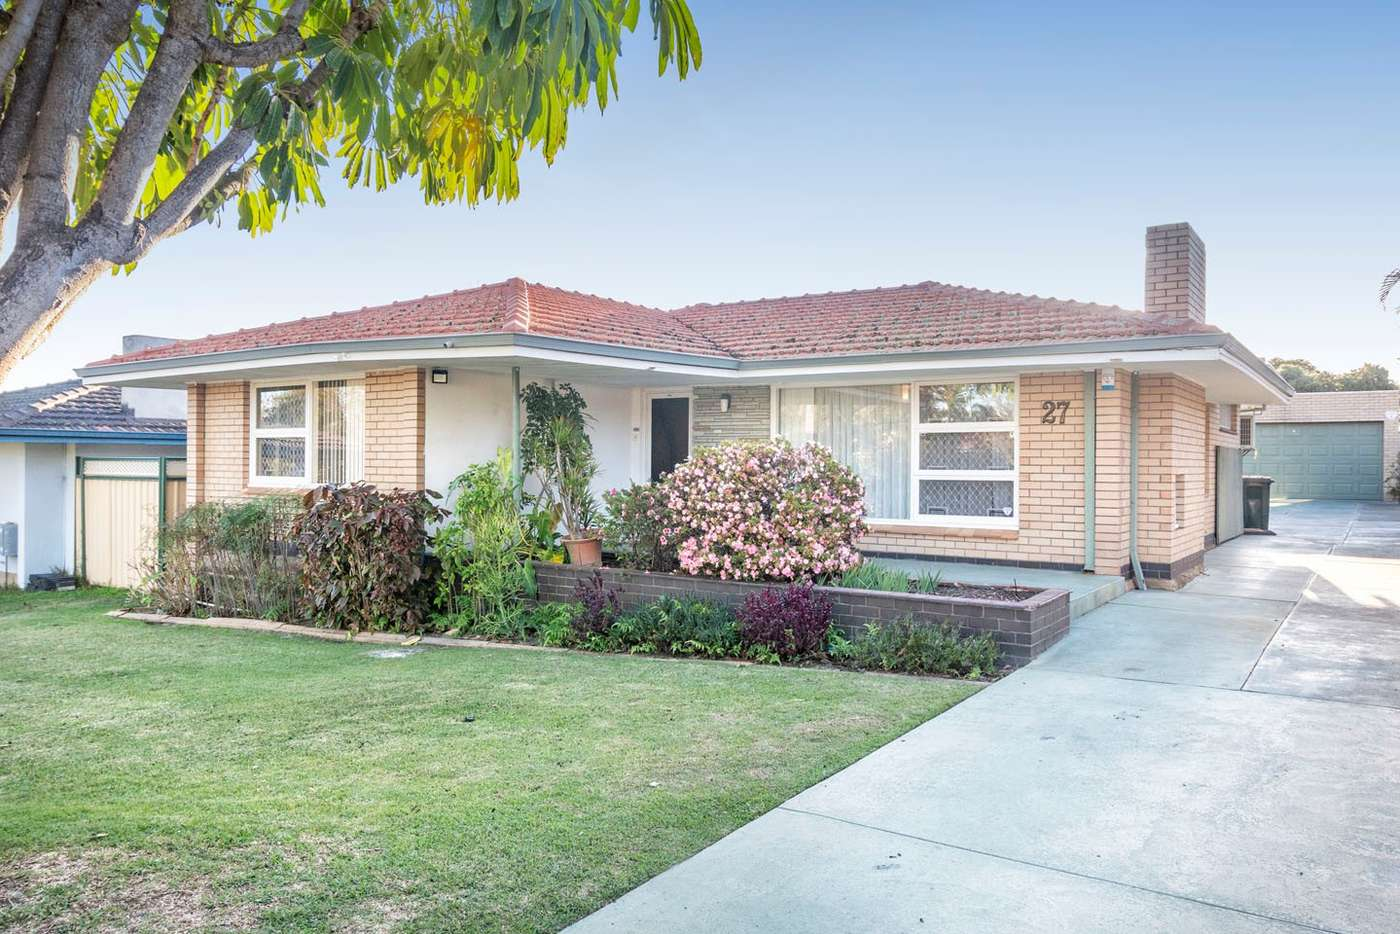 Main view of Homely house listing, 27 Wyndham Street, St James WA 6102